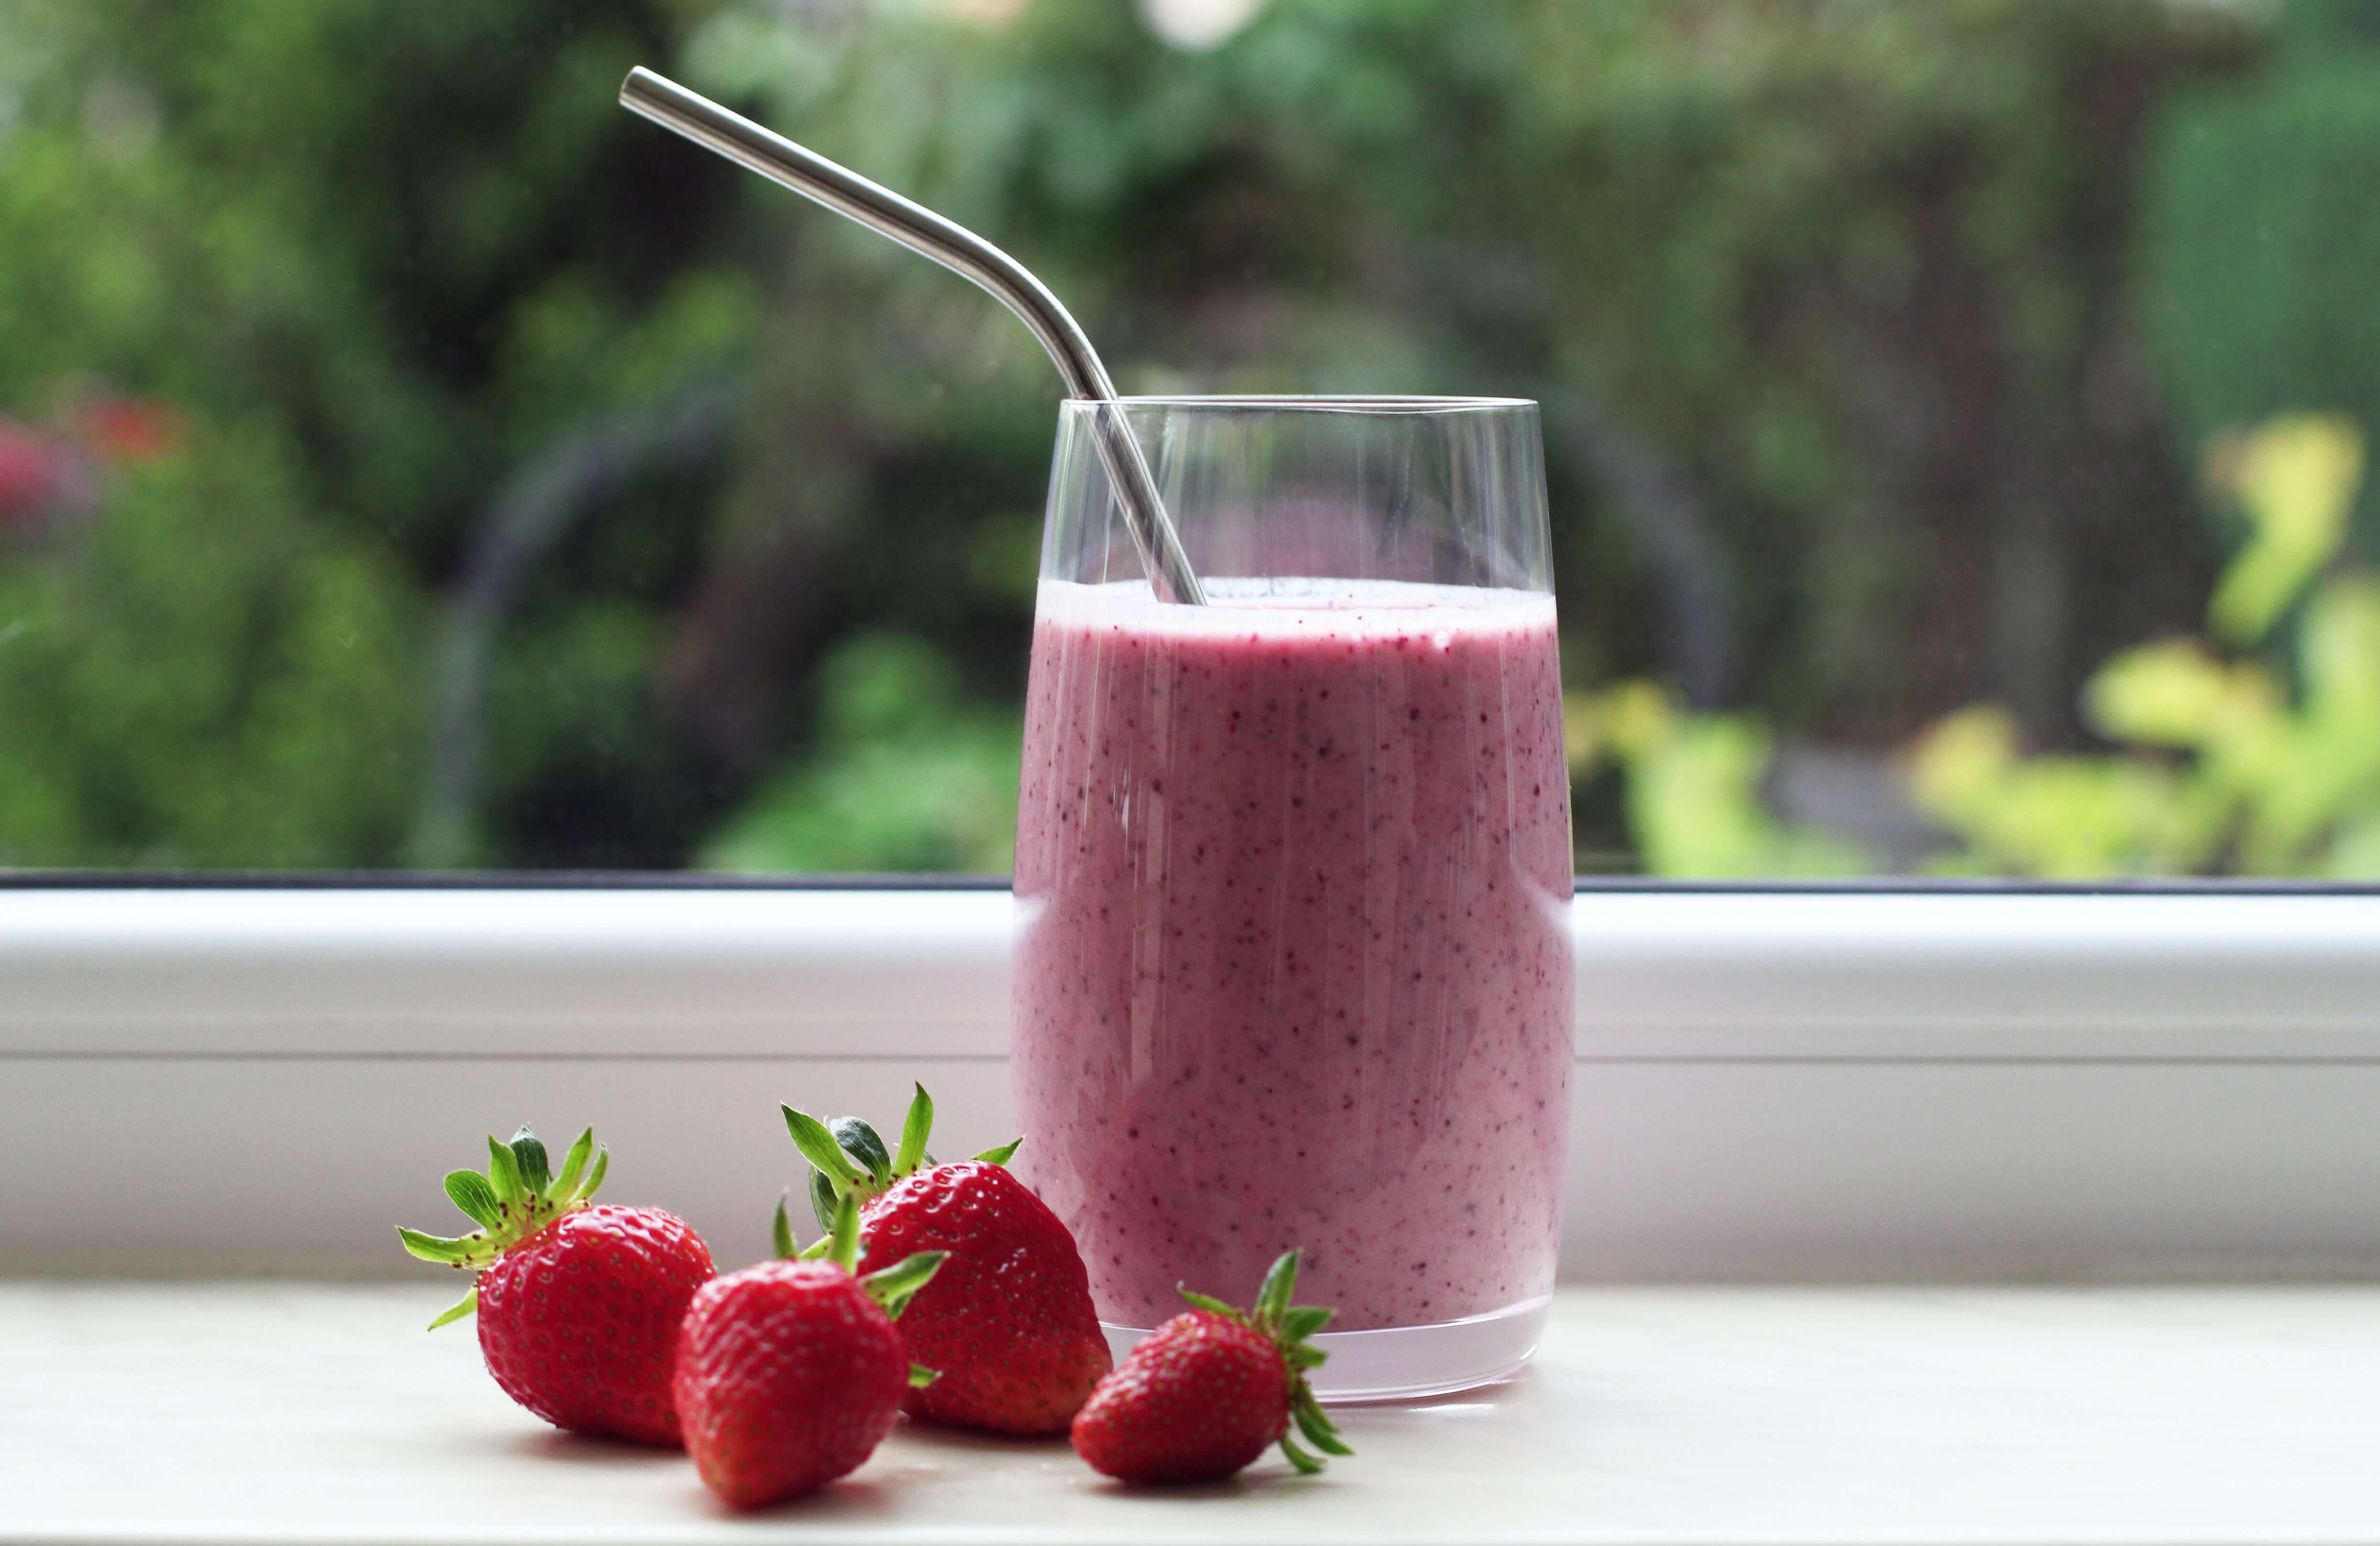 Strawberry milkshake in a clear glass placed in front of a window